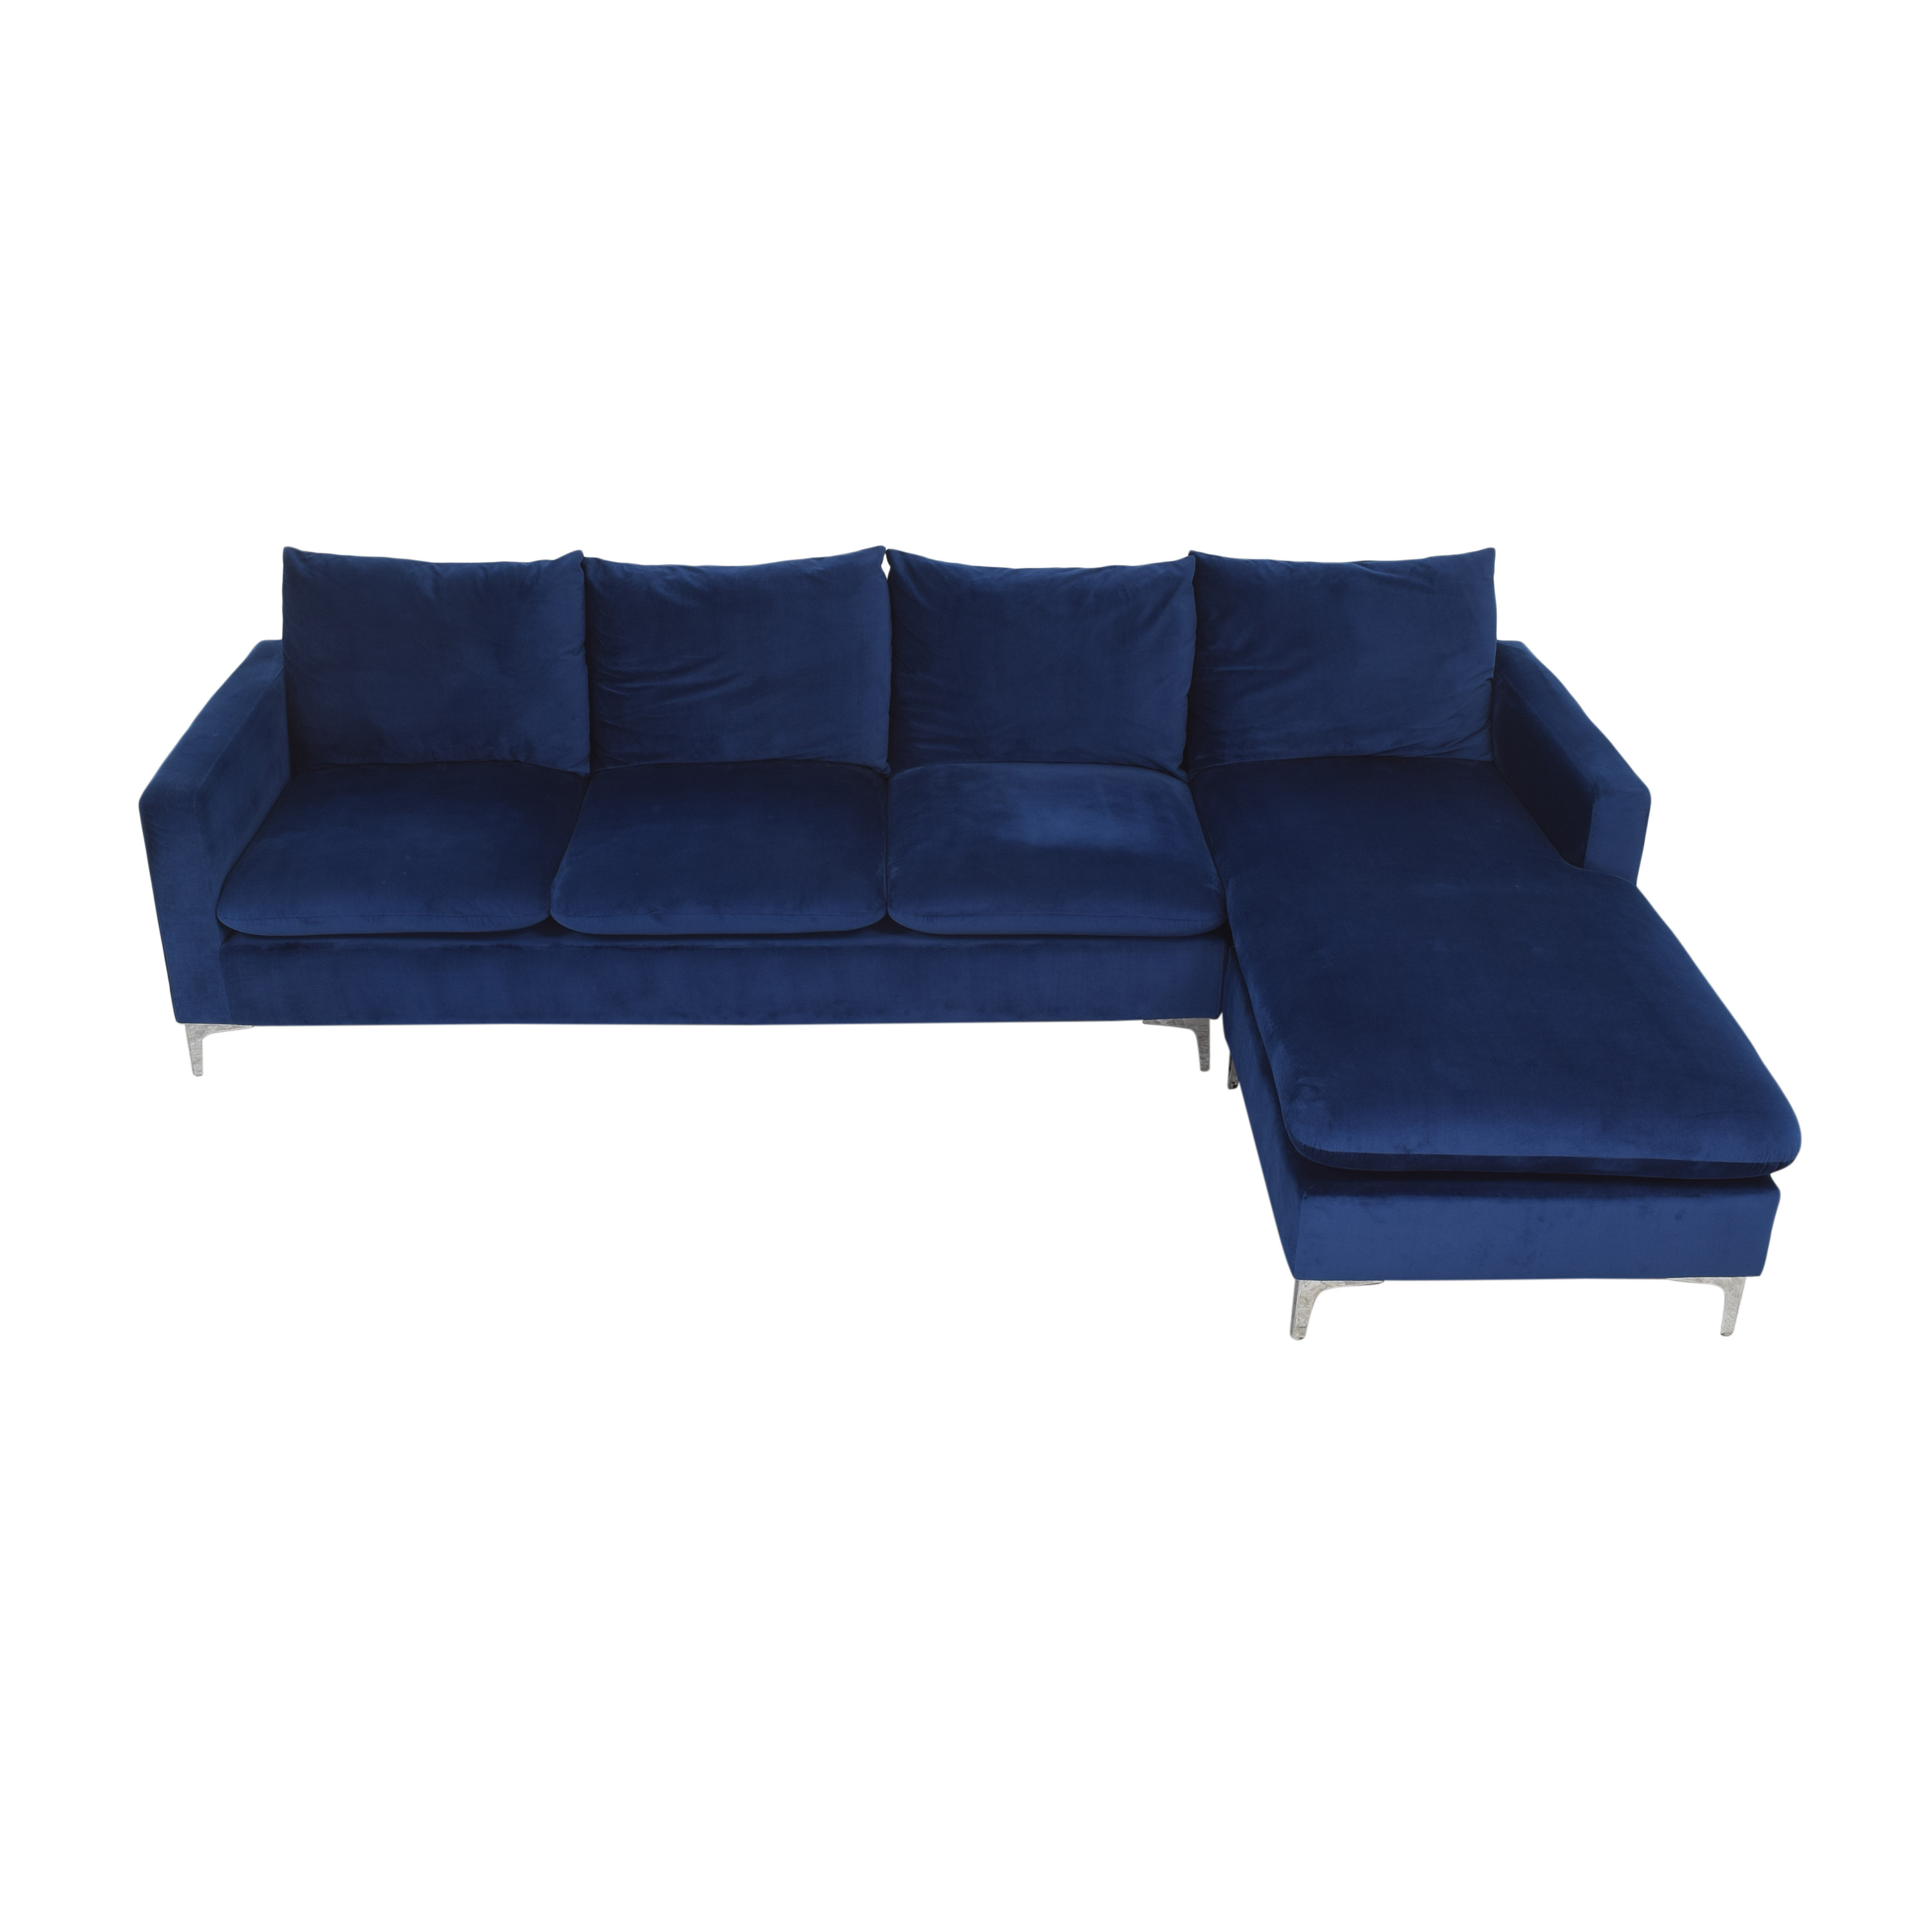 AllModern AllModern Boutwell Reversible Sectional Sofa with Chaise Sofas